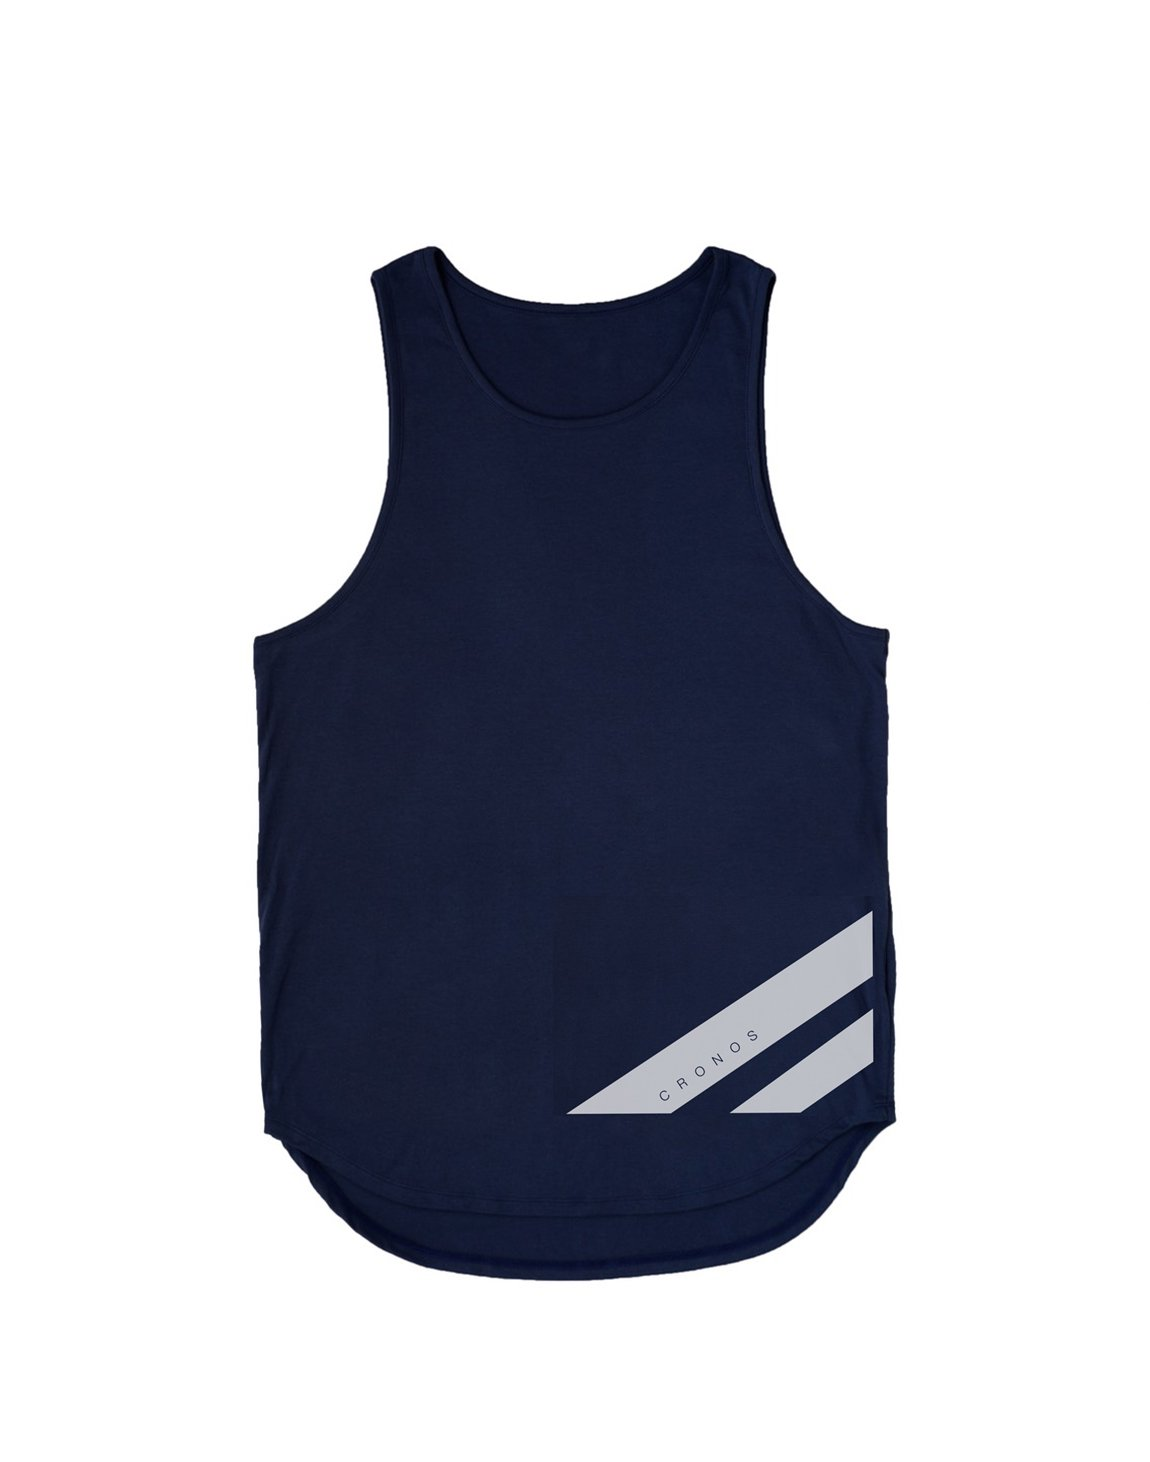 <img class='new_mark_img1' src='https://img.shop-pro.jp/img/new/icons55.gif' style='border:none;display:inline;margin:0px;padding:0px;width:auto;' />CRONOS NEW STRIPE LOGO TANKTOP【NAVY】